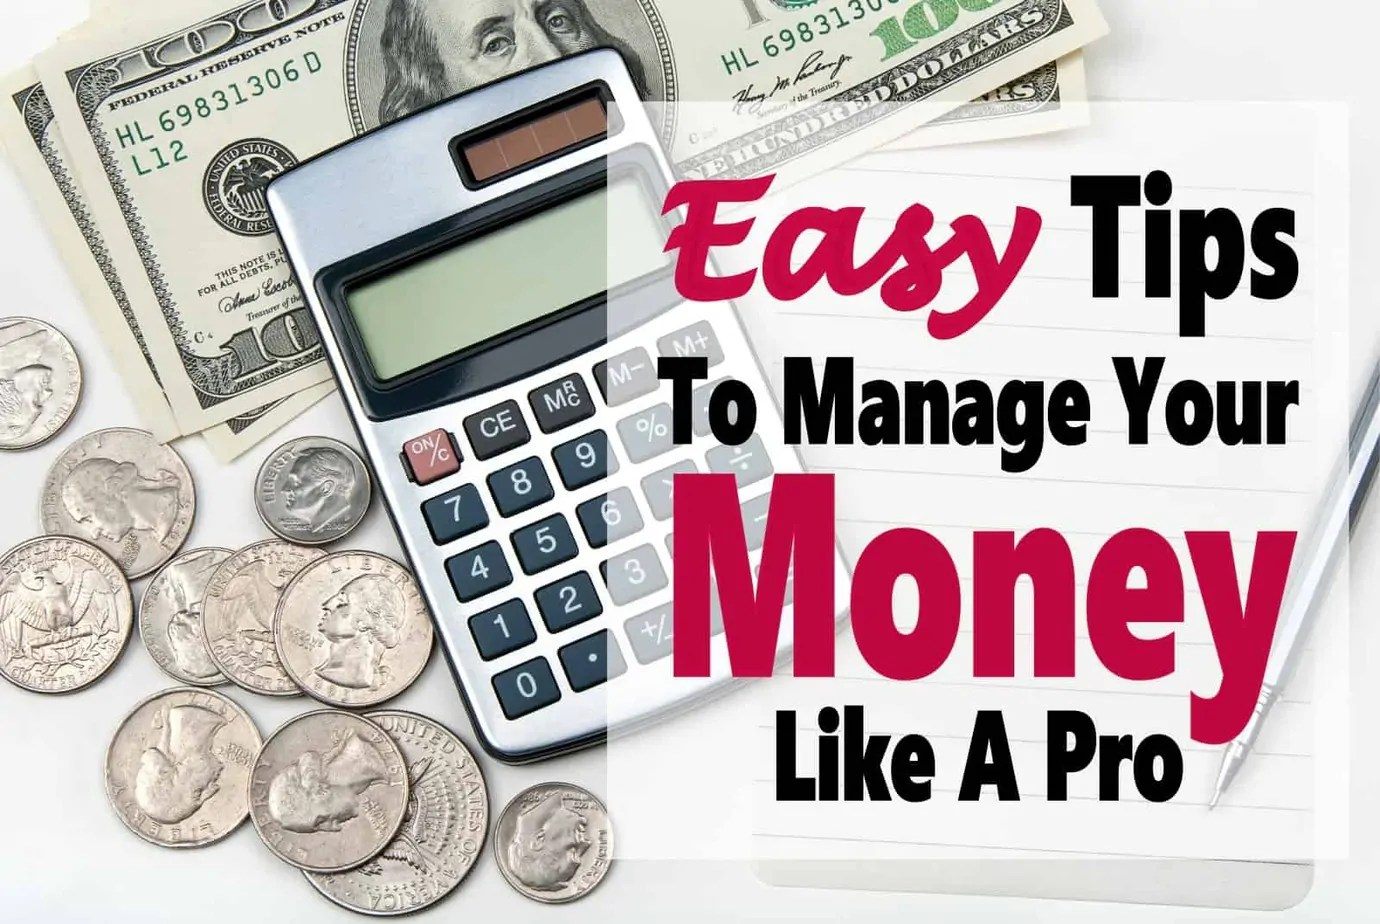 5 Tips to Manage Your Finances Like A Pro